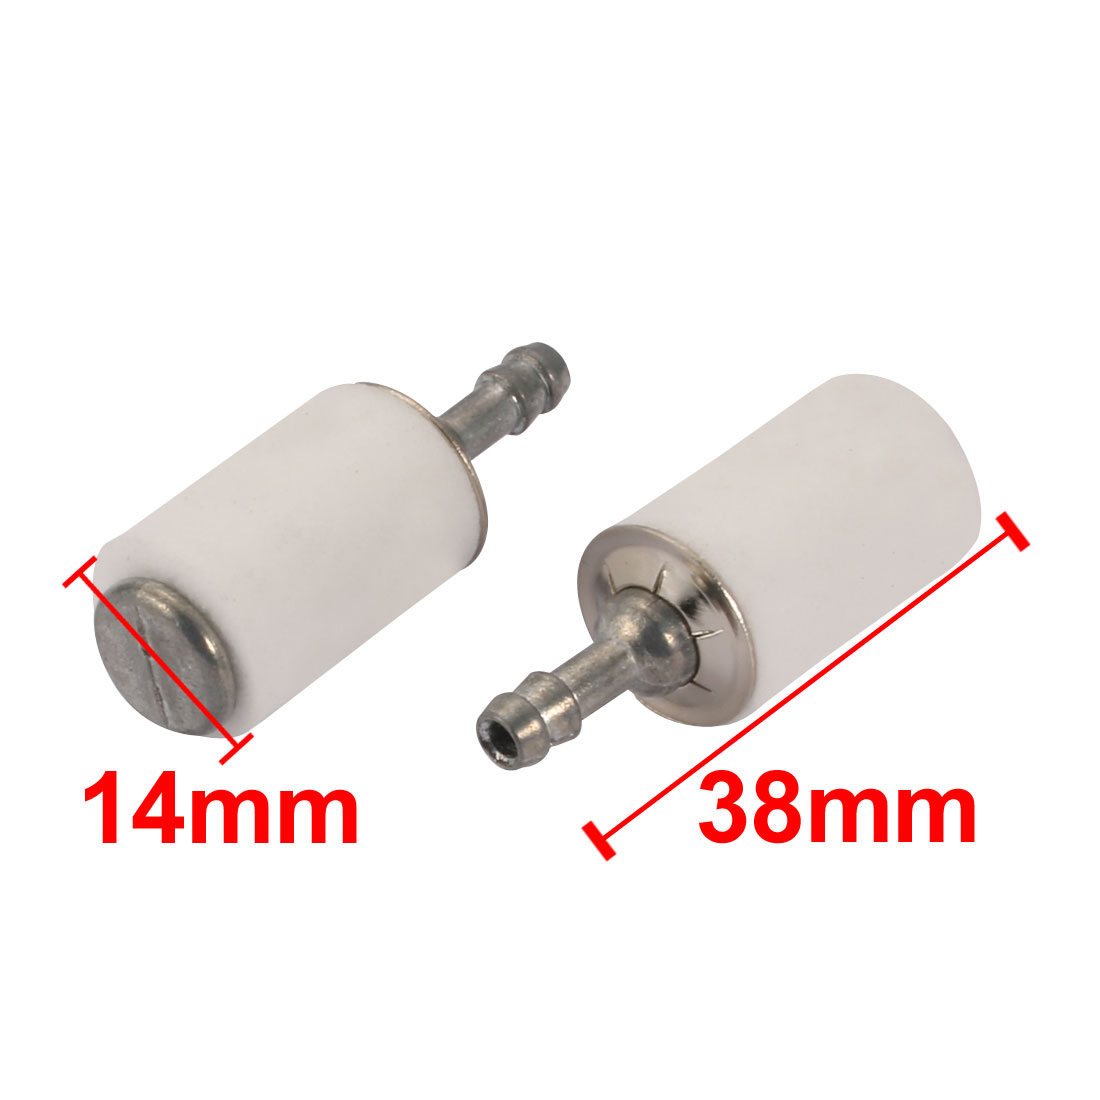 hight resolution of 2pcs fuel filter fit for poulan chainsaw weedeater trimmer blower walmart com